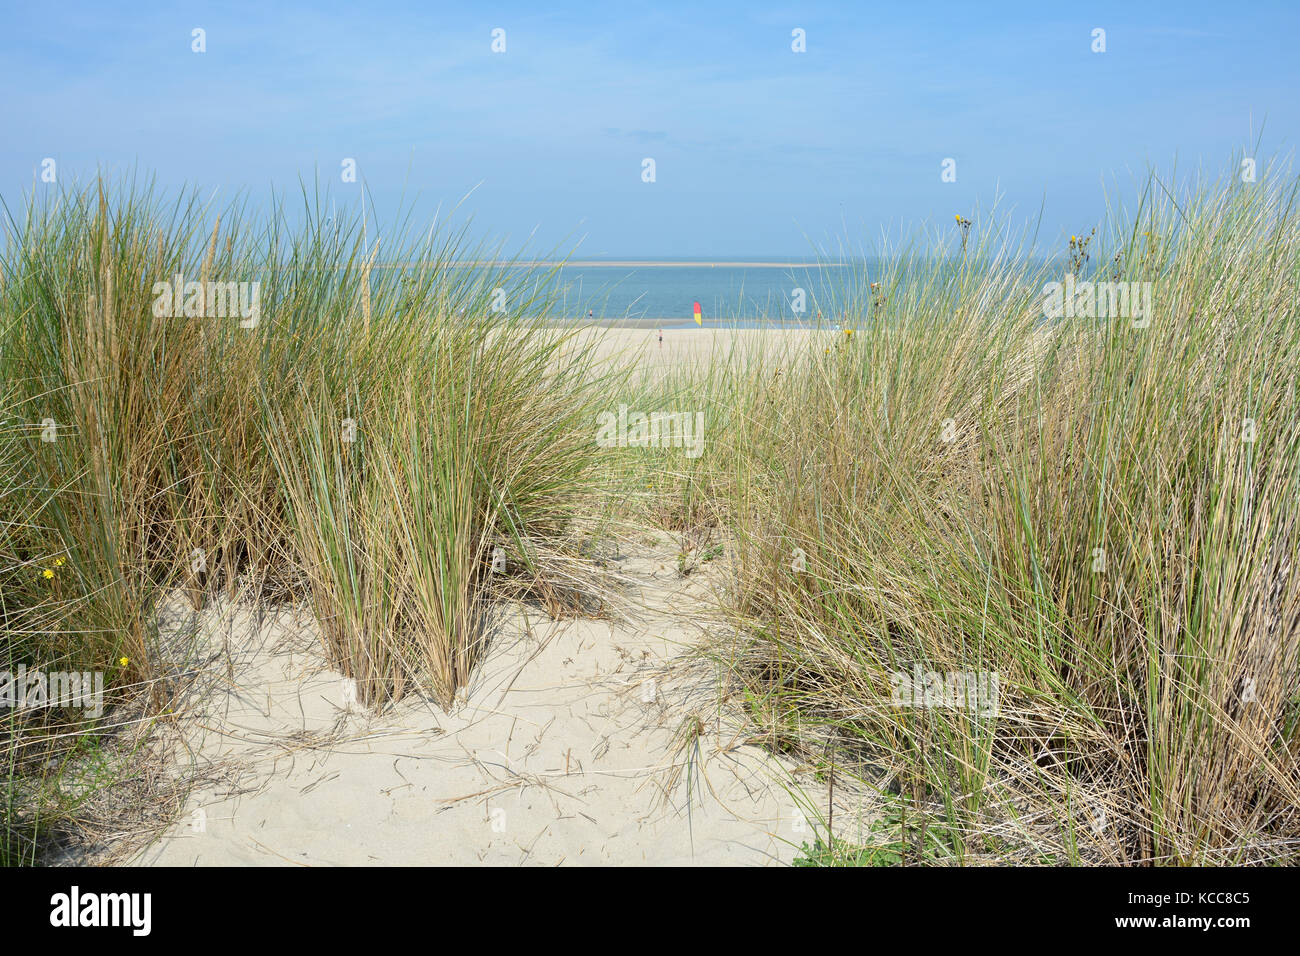 Look by the beach oat in the dunes to the North Sea - Stock Image